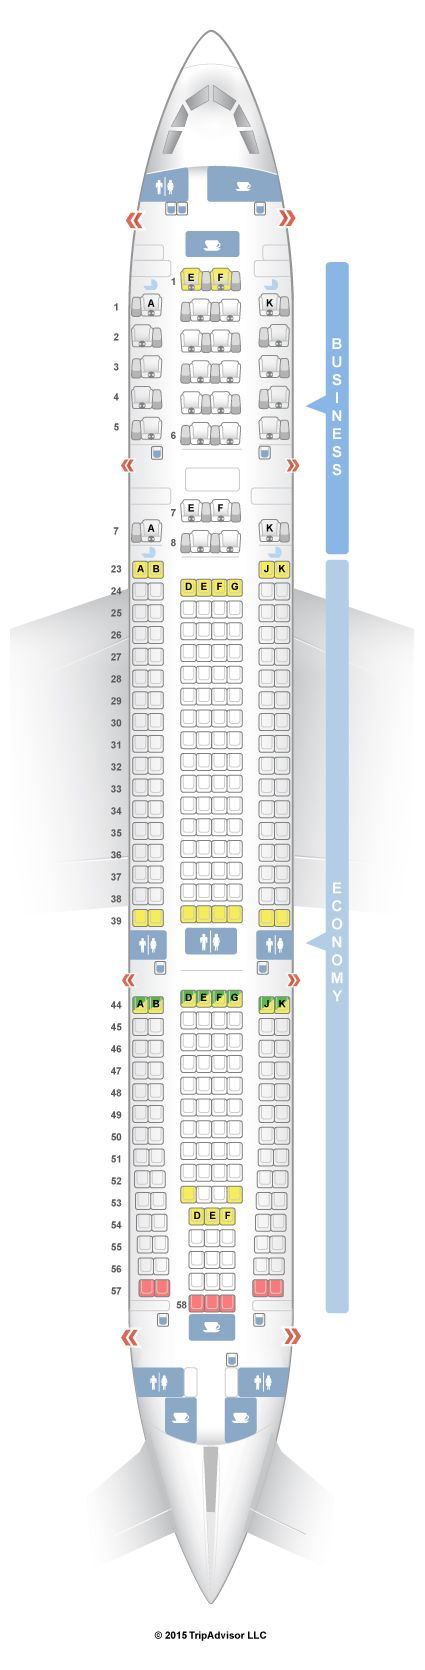 Best 25 Airbus A330 200 Seating Ideas On Pinterest